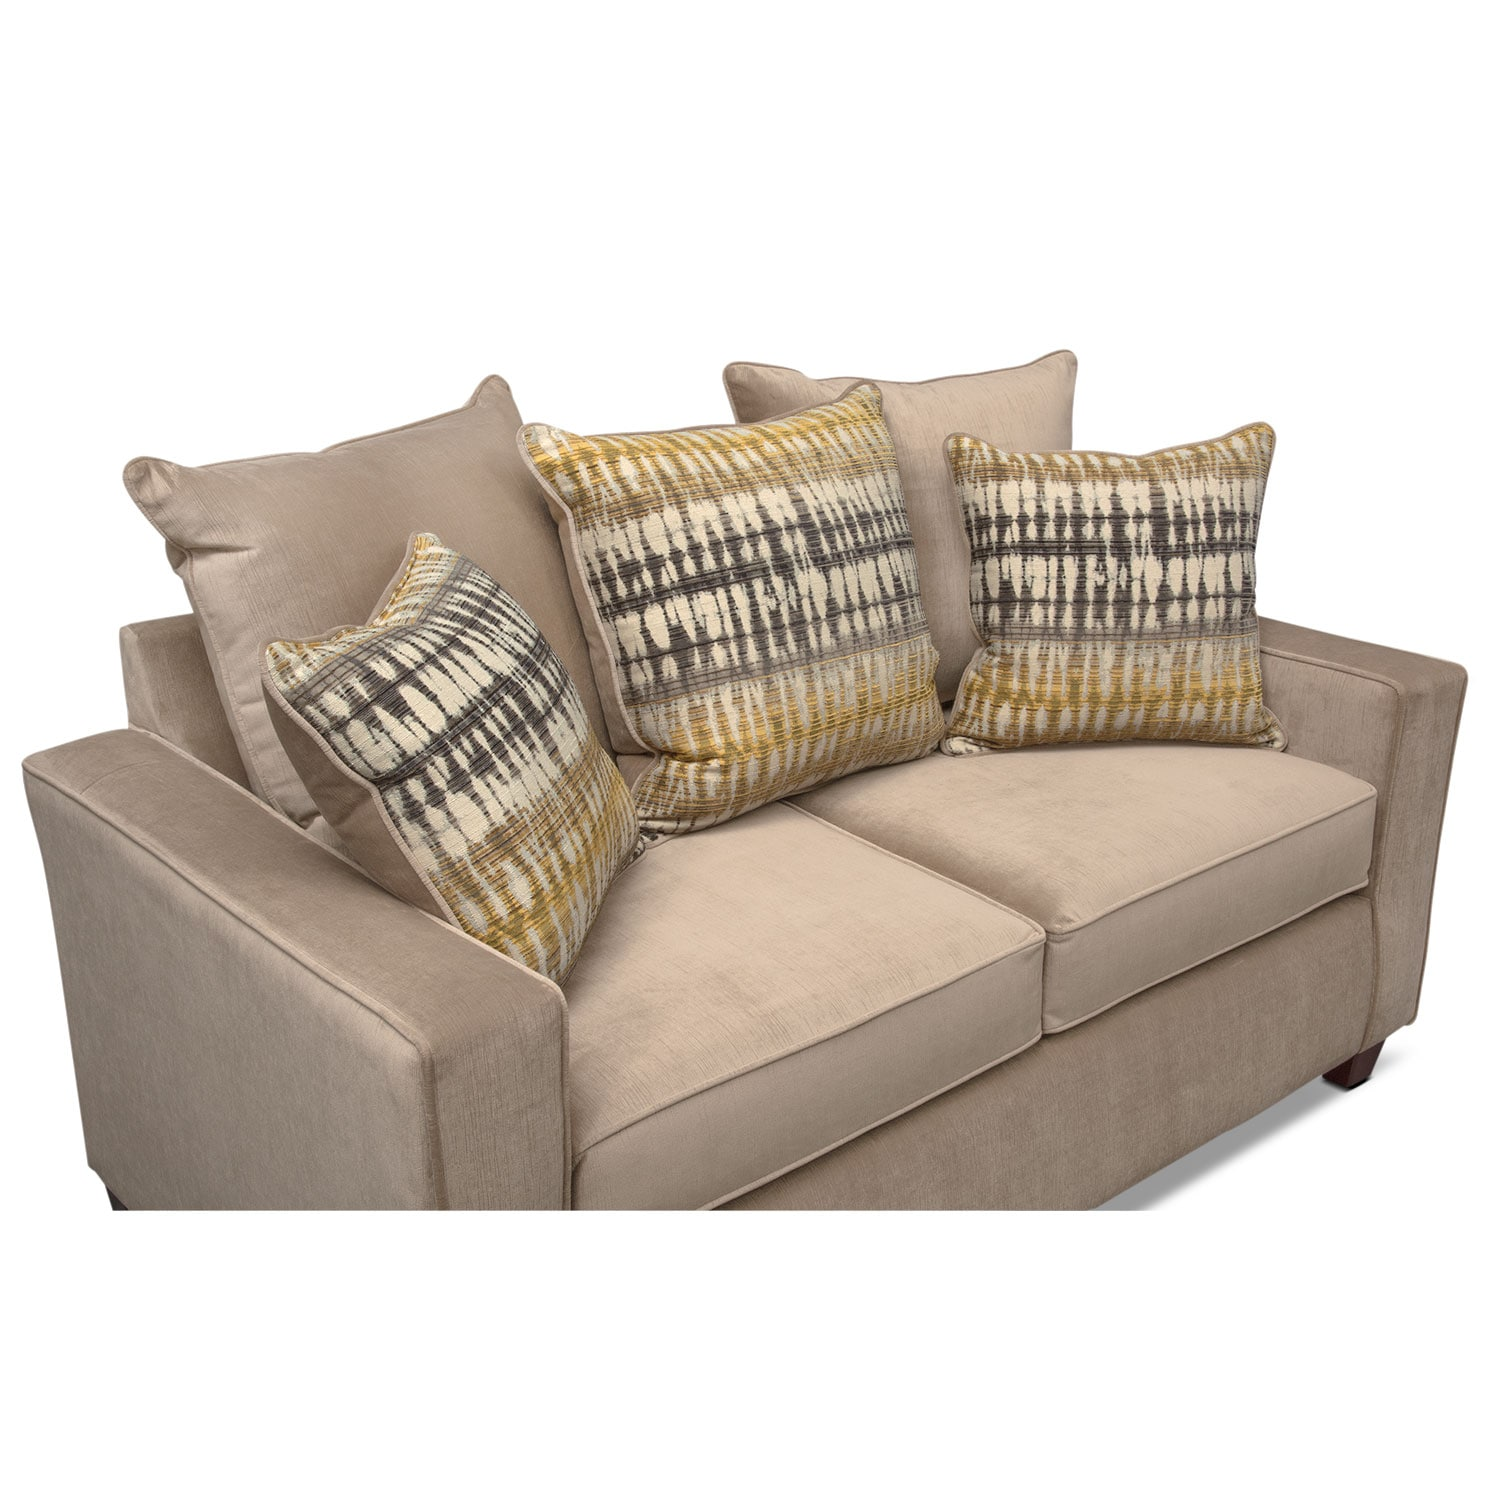 Sleeper sofa loveseat and chair set hover touch to zoom click to change image